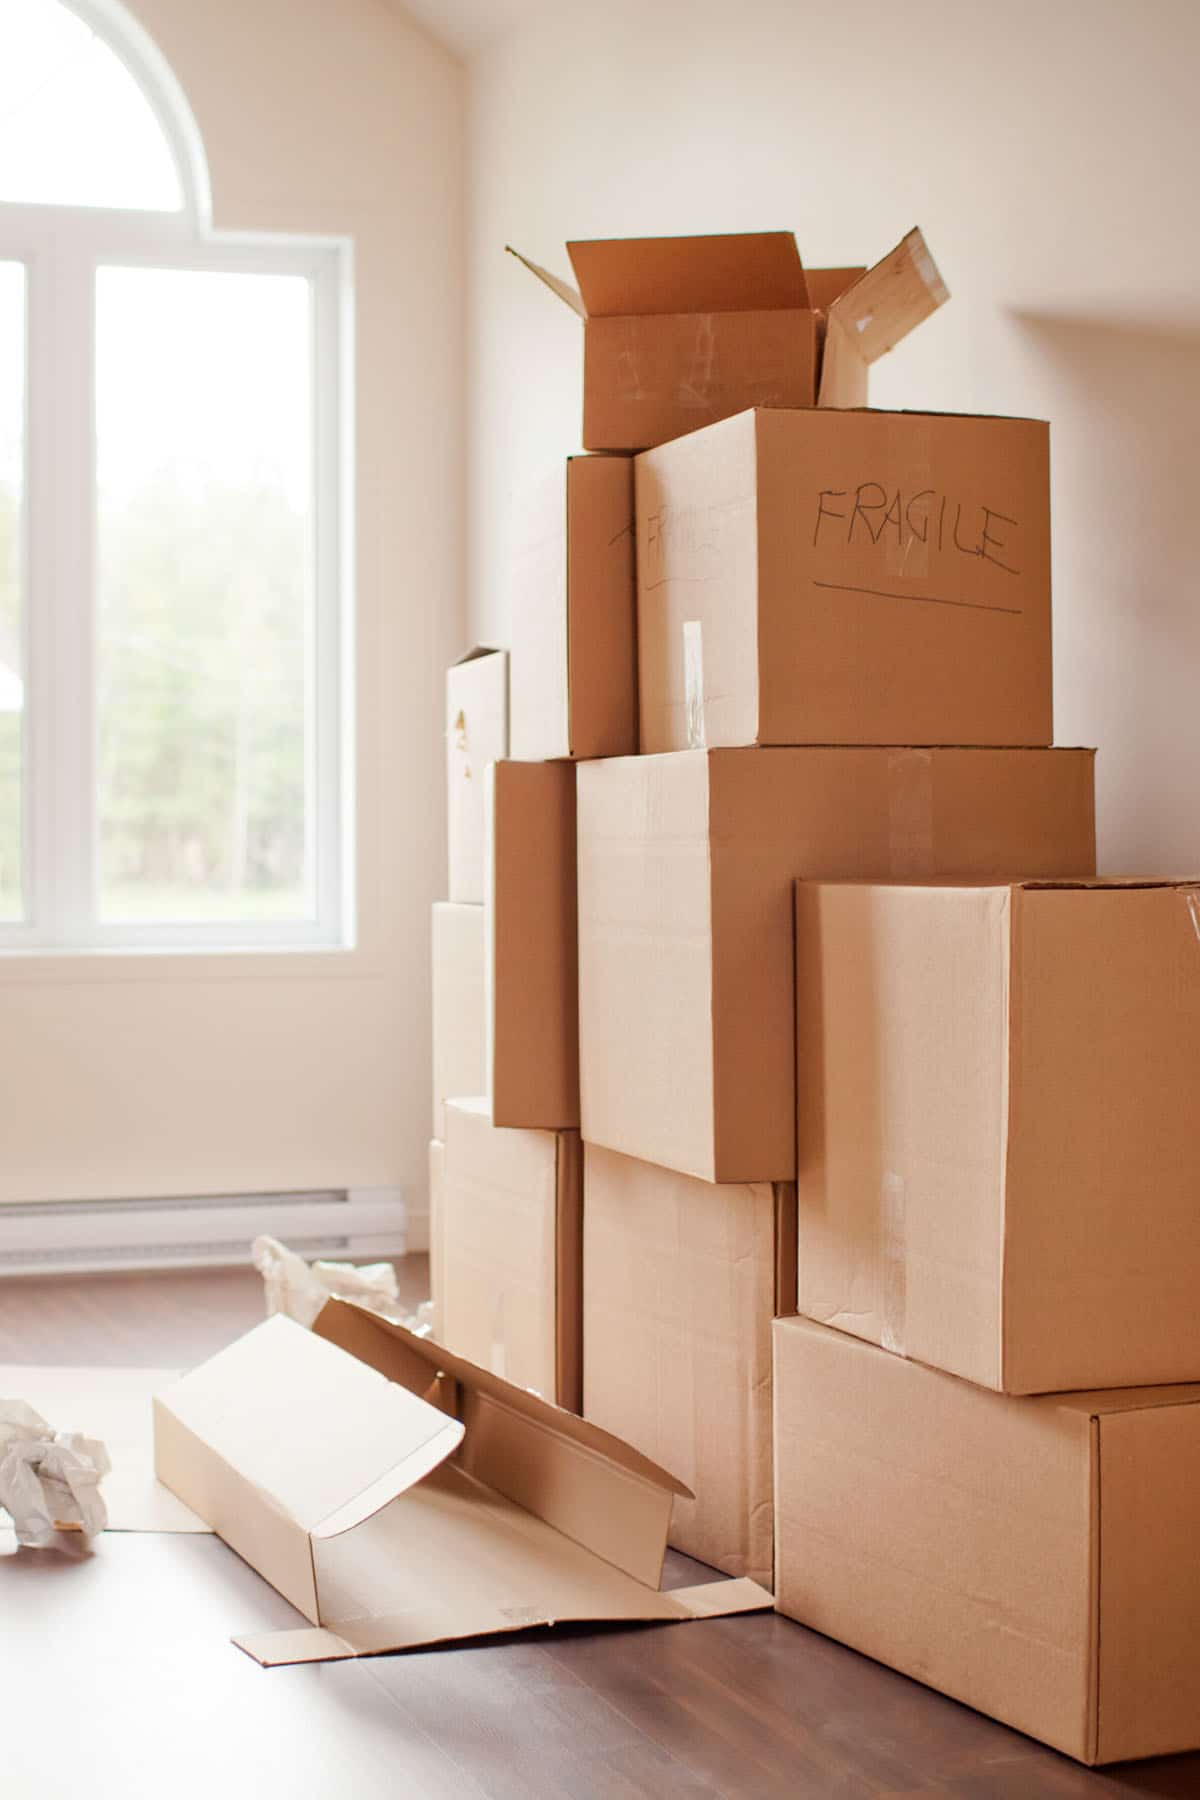 a picture of boxes stacked in an empty room